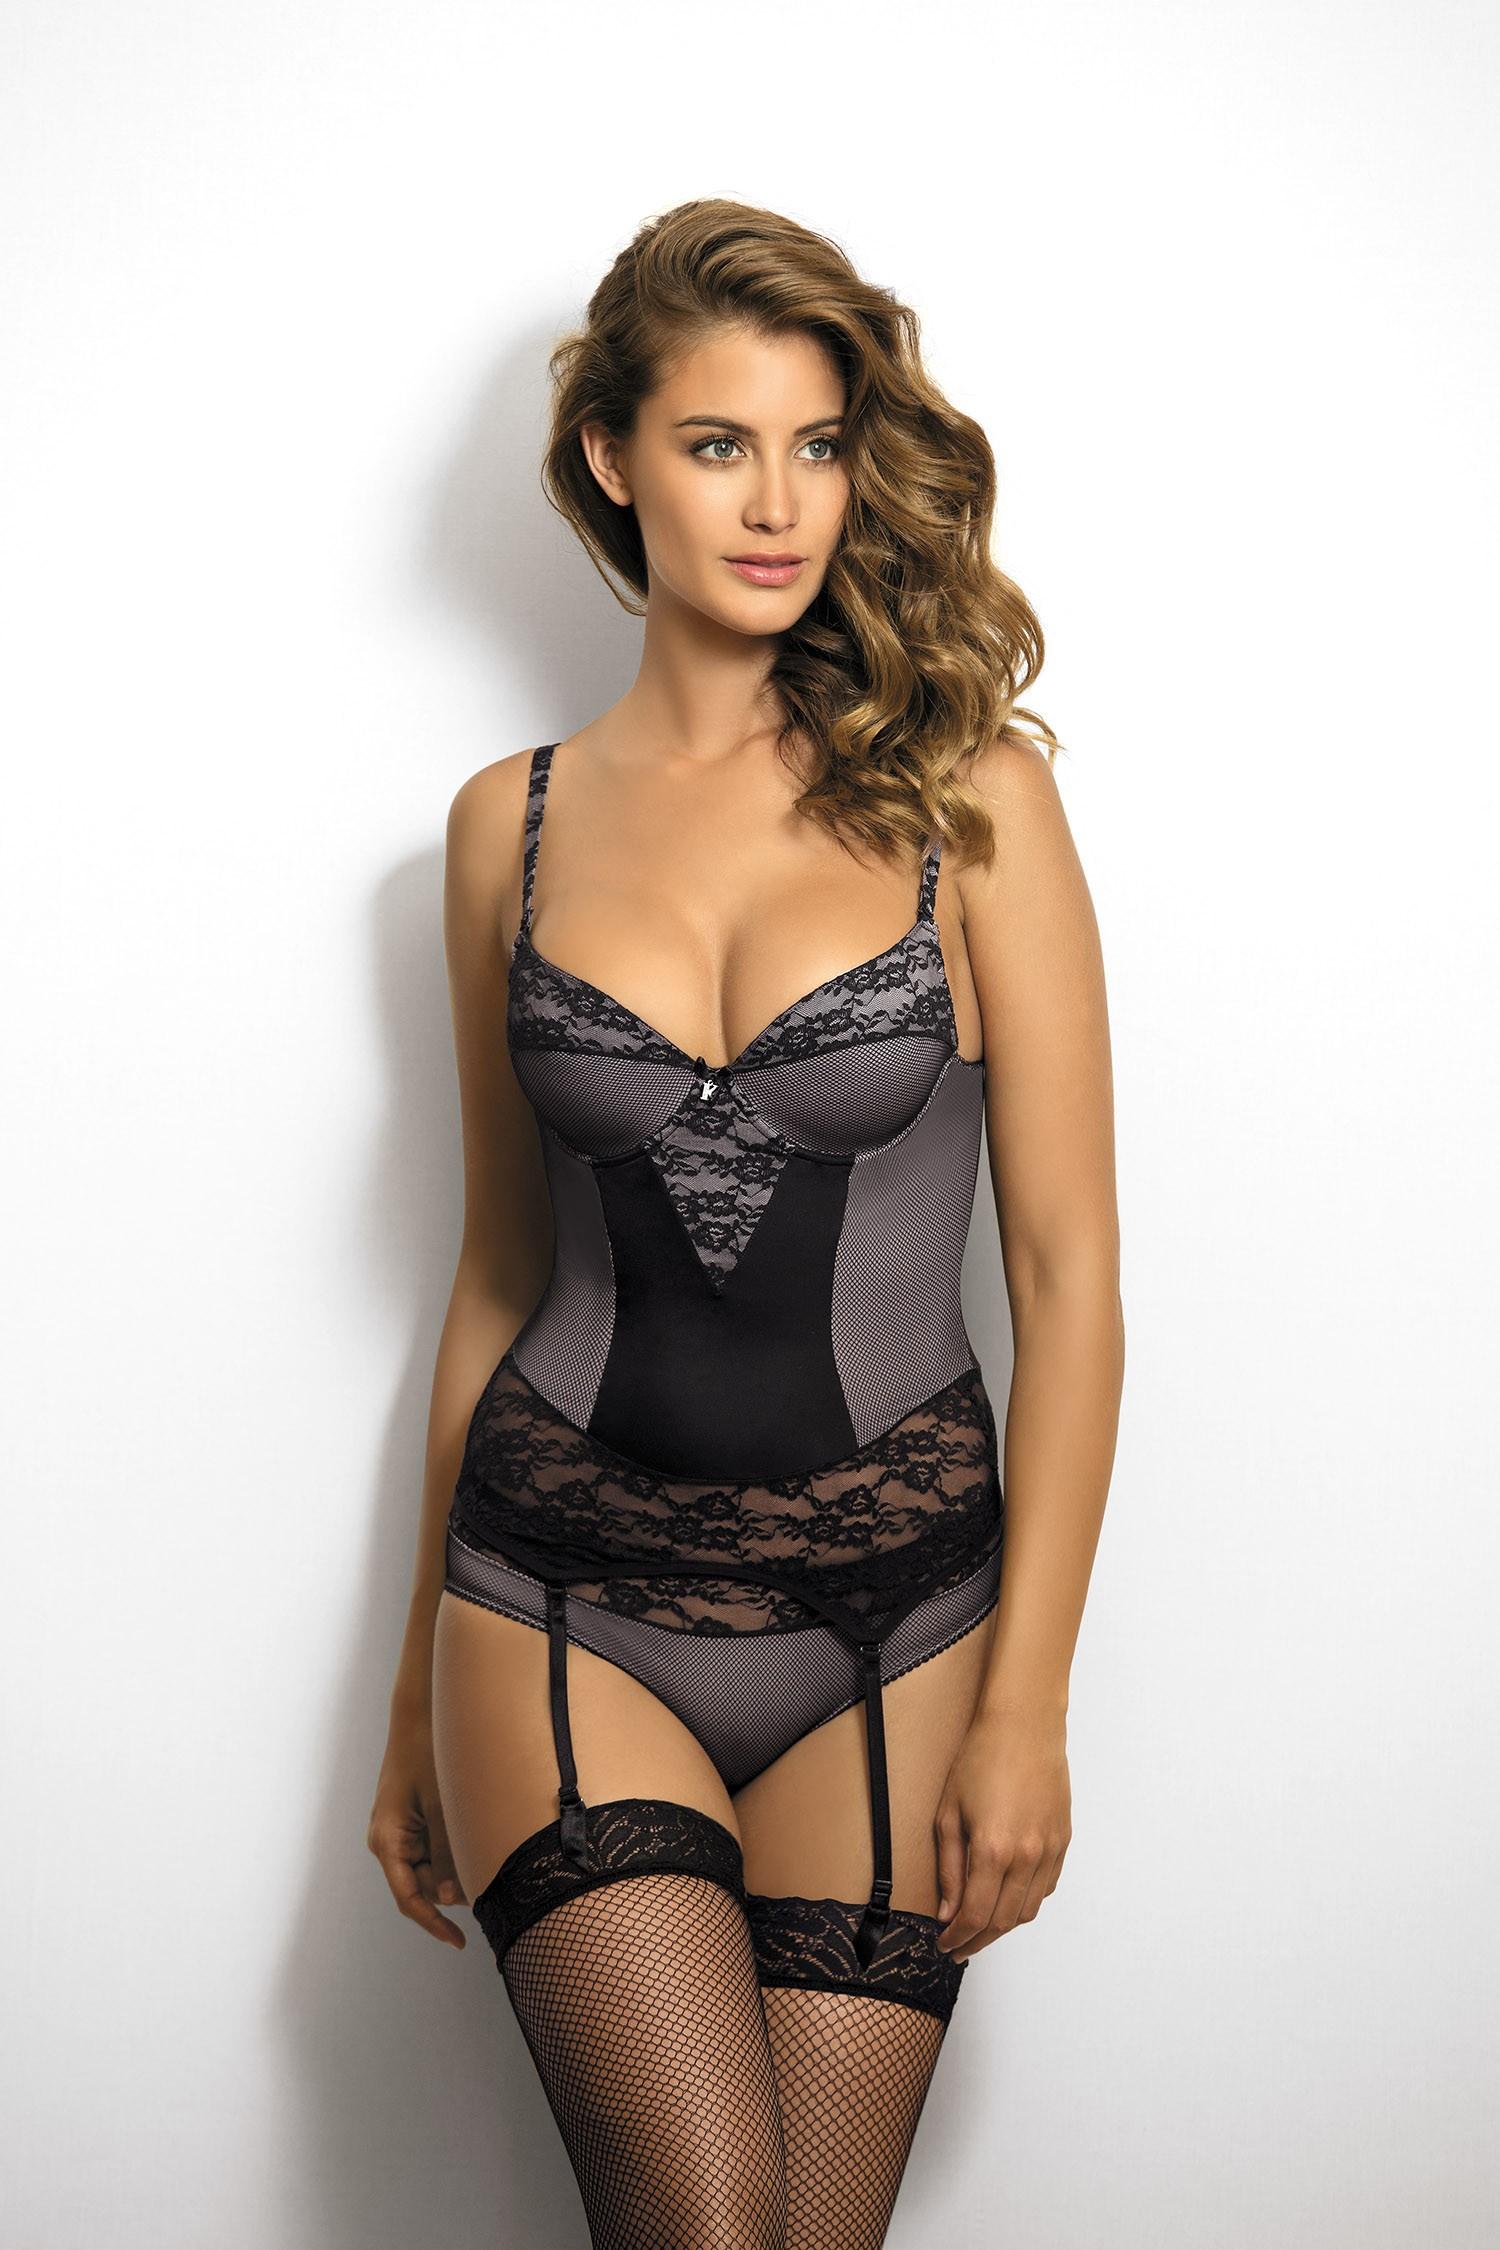 J'ADORE II GORSET PUSH-UP